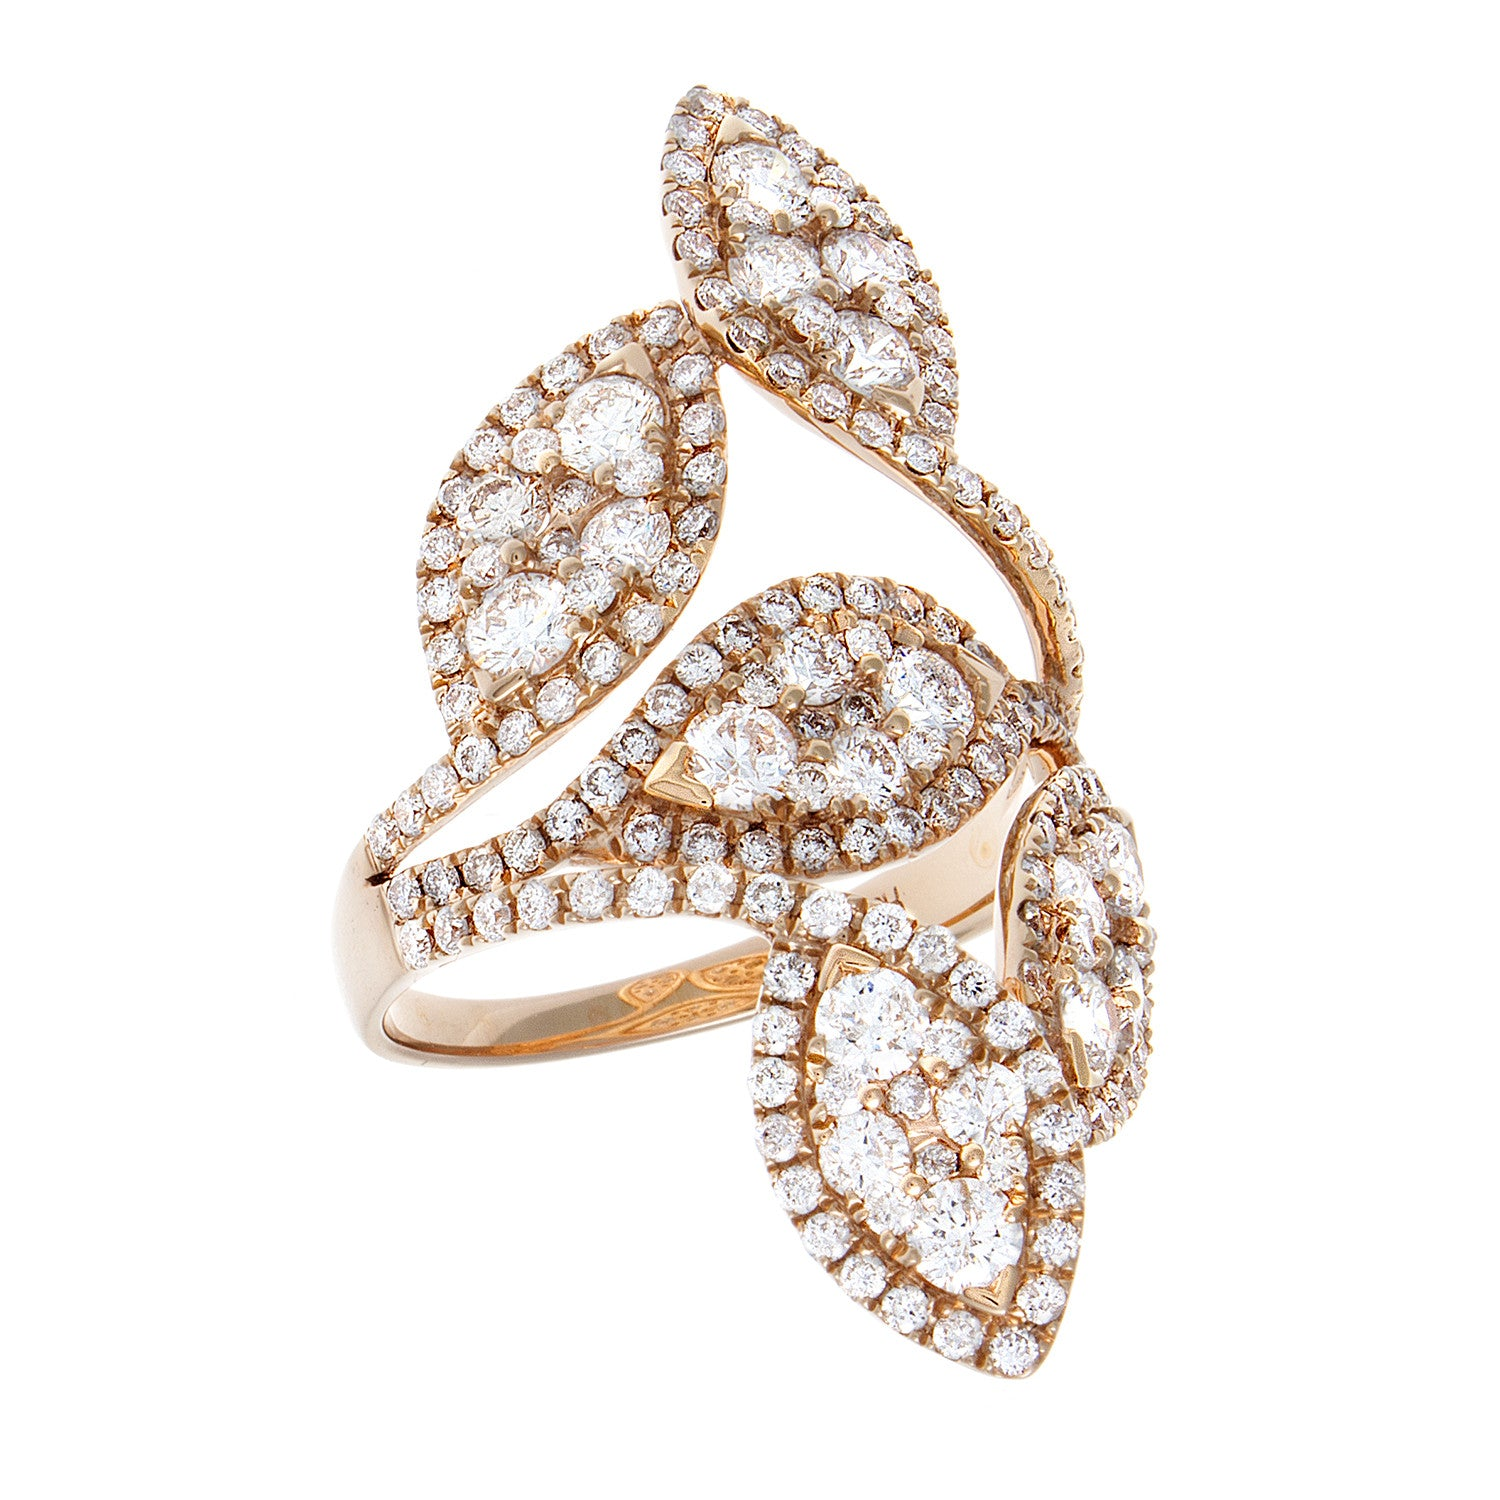 Diamond Leaf Teardrops & 14K Yellow Gold Ring-SOLD/CAN BE SPECIAL ORDERED WITH 4-6 WEEKS DELIVERY TIME FRAME